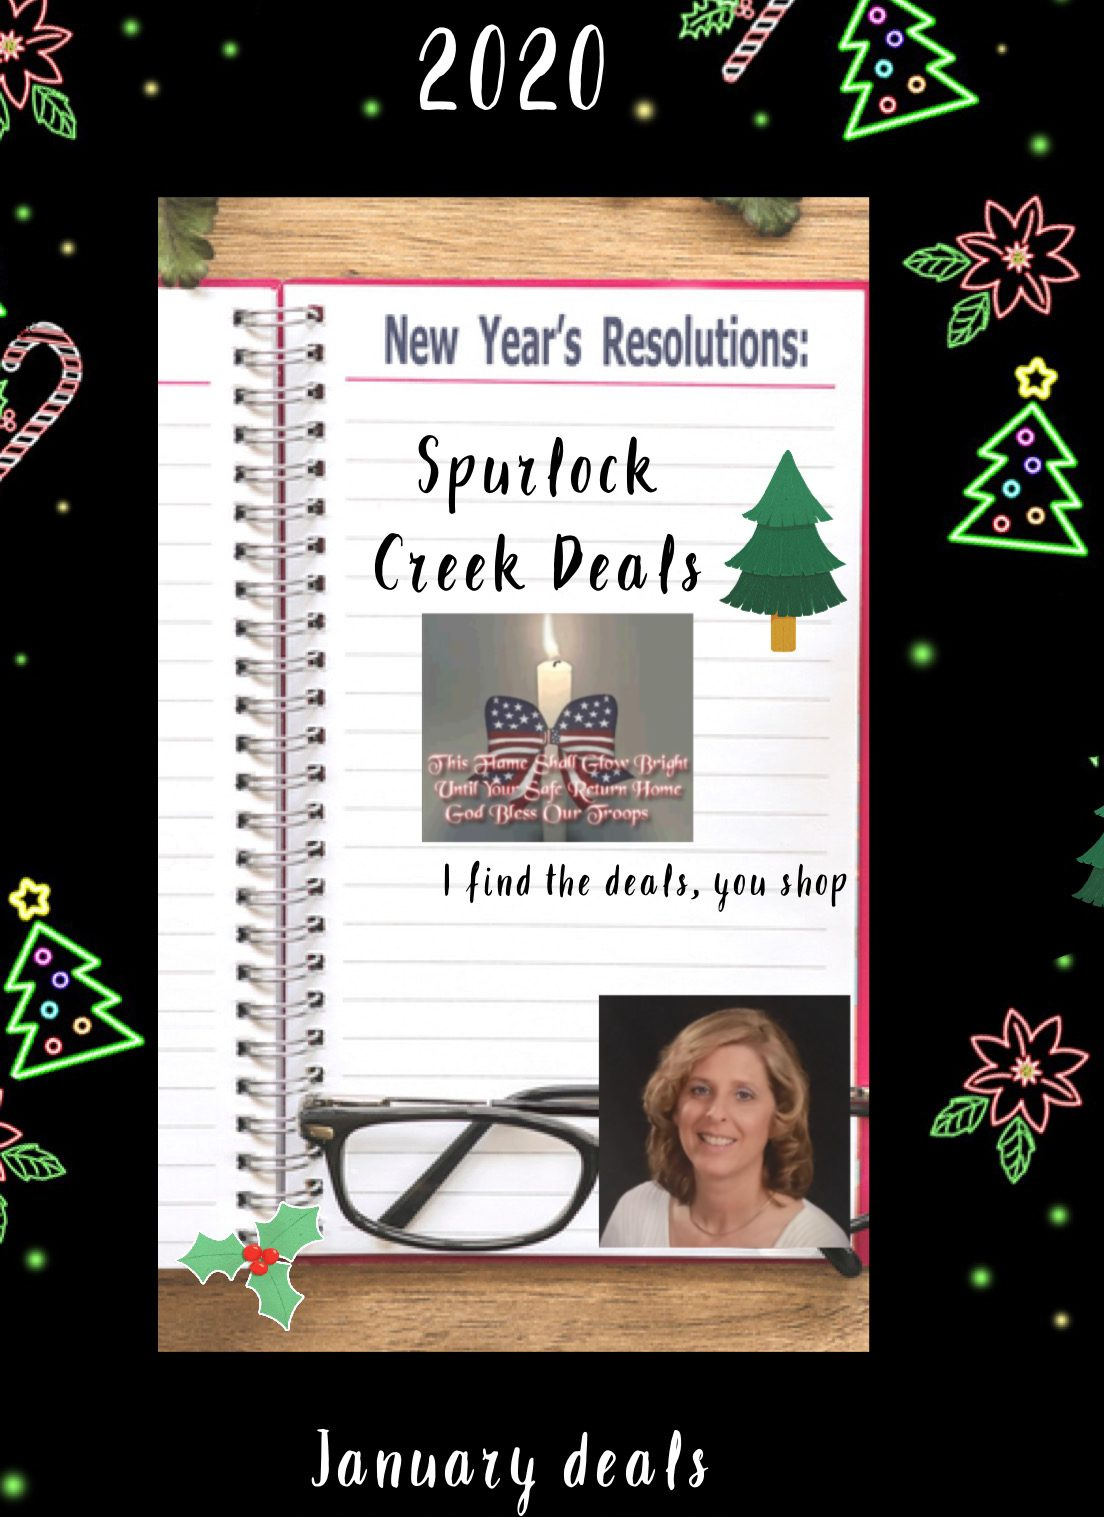 Spurlock Creek Creations and Deals